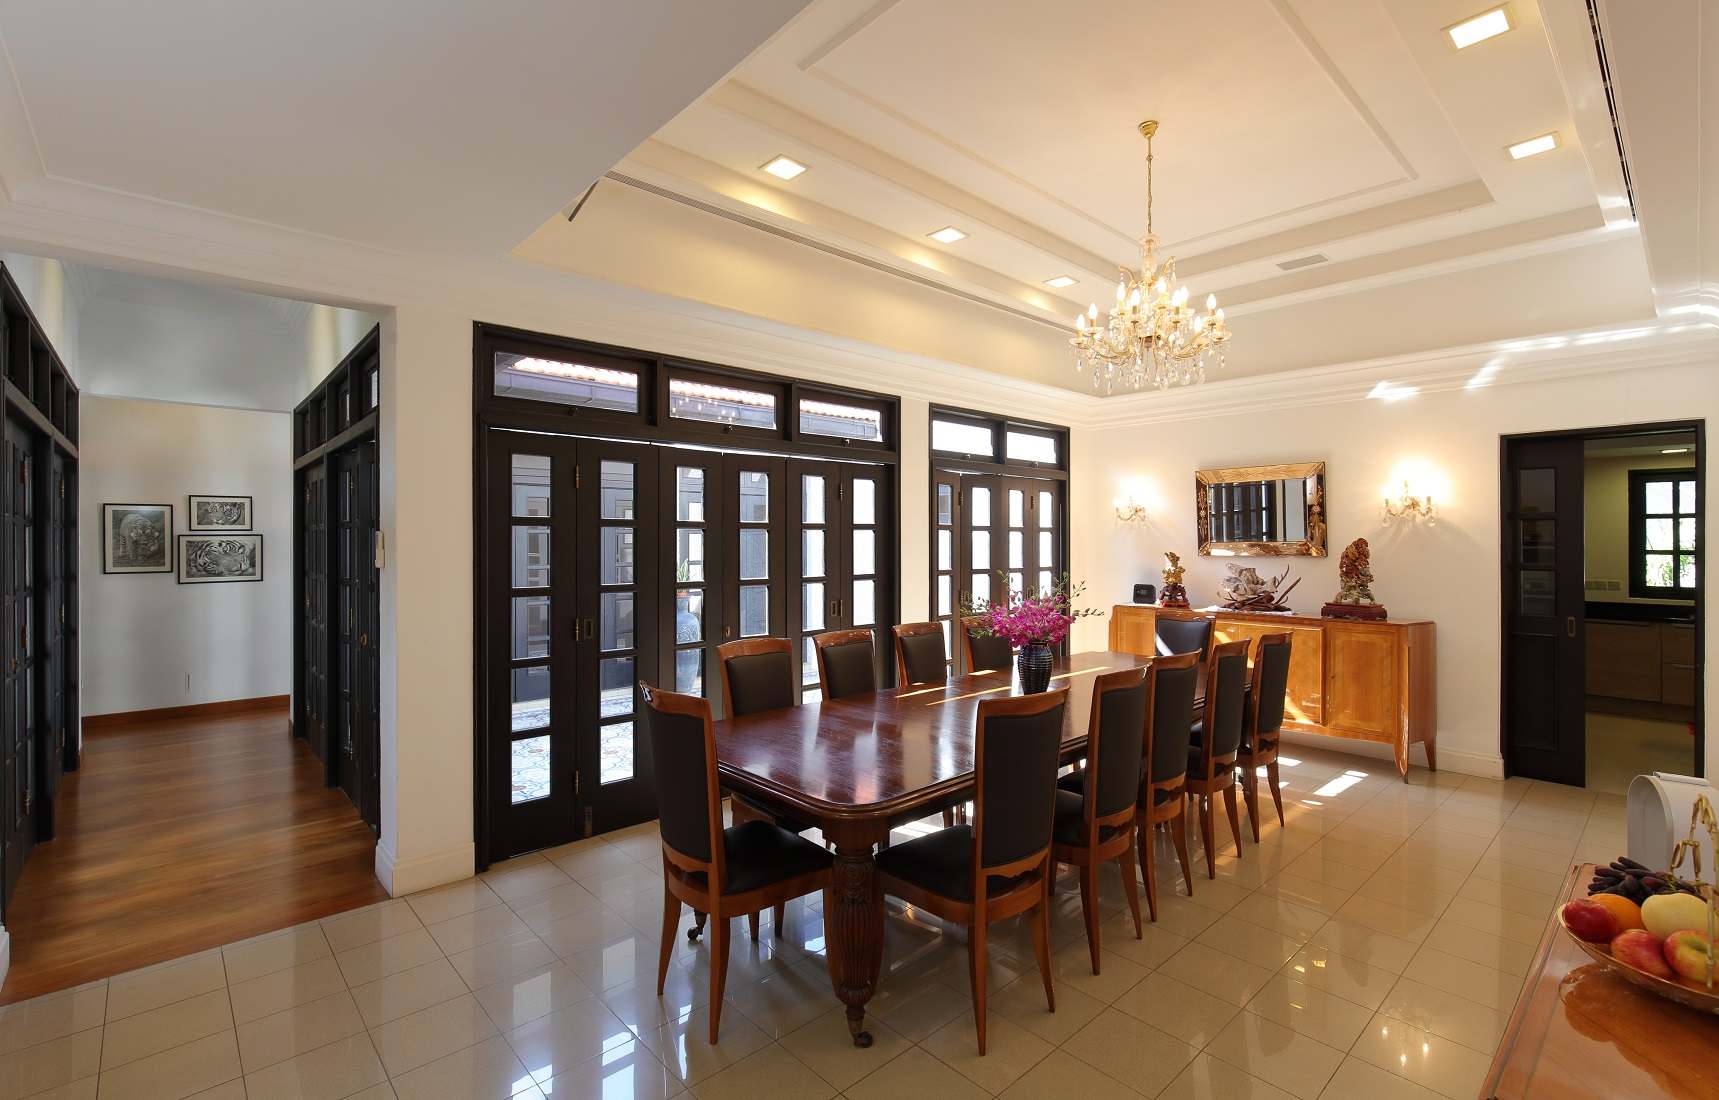 The dining room with French doors leading out to the tiled courtyard (Photo: Samuel Isaac Chua/EdgeProp Singapore)